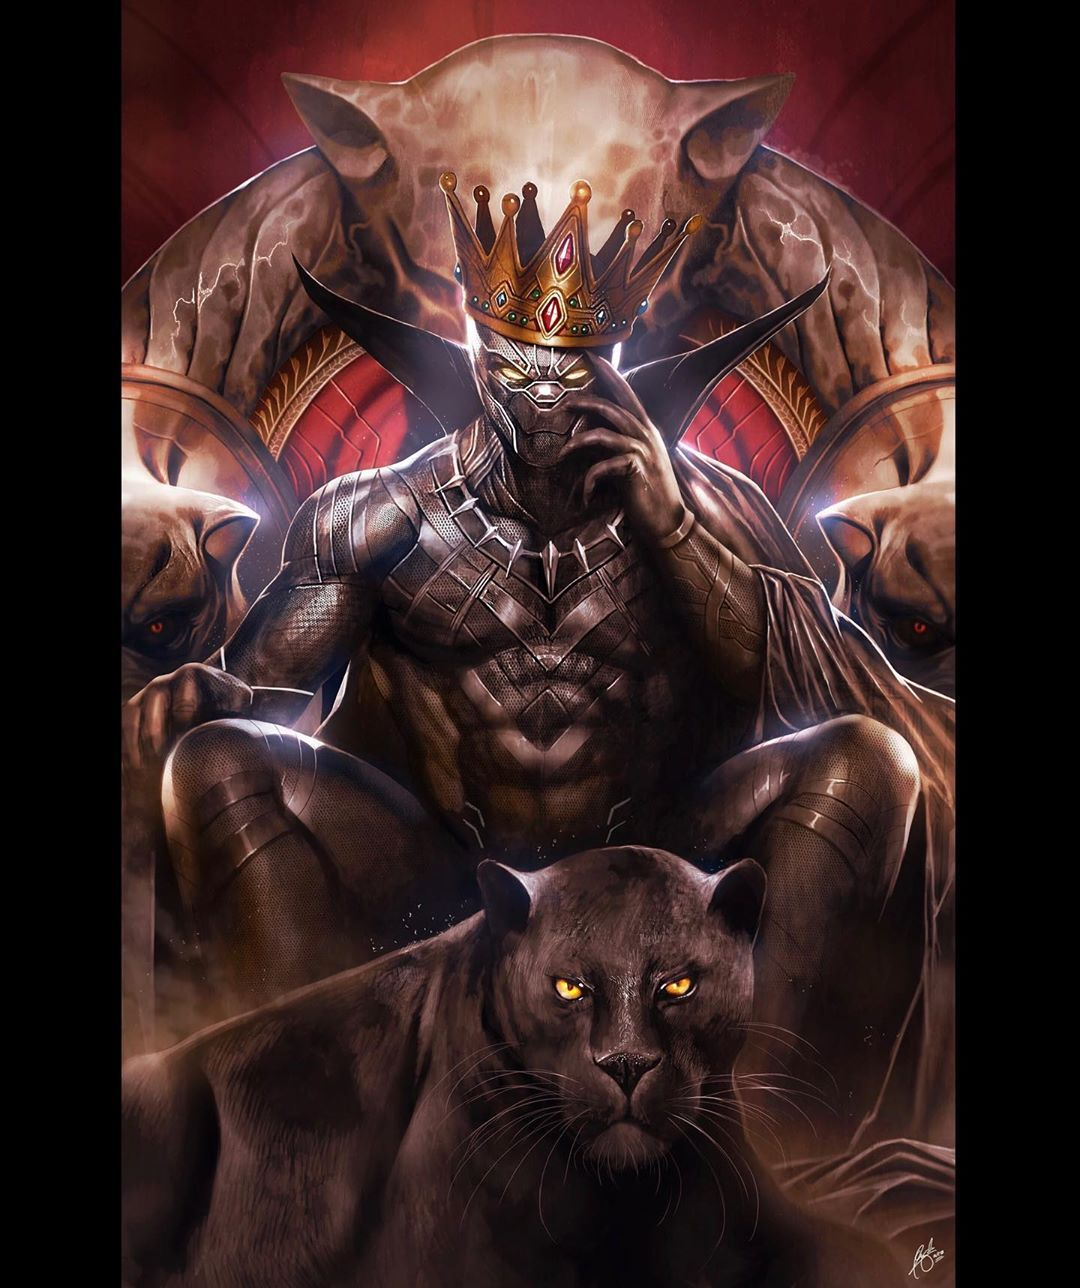 Christian G Wizyakuza Art On Instagram 2020 Is The Worst Rip To An Incredible Actor And The Black Pant In 2020 Black Panther Art Panther Art Black Panther Marvel